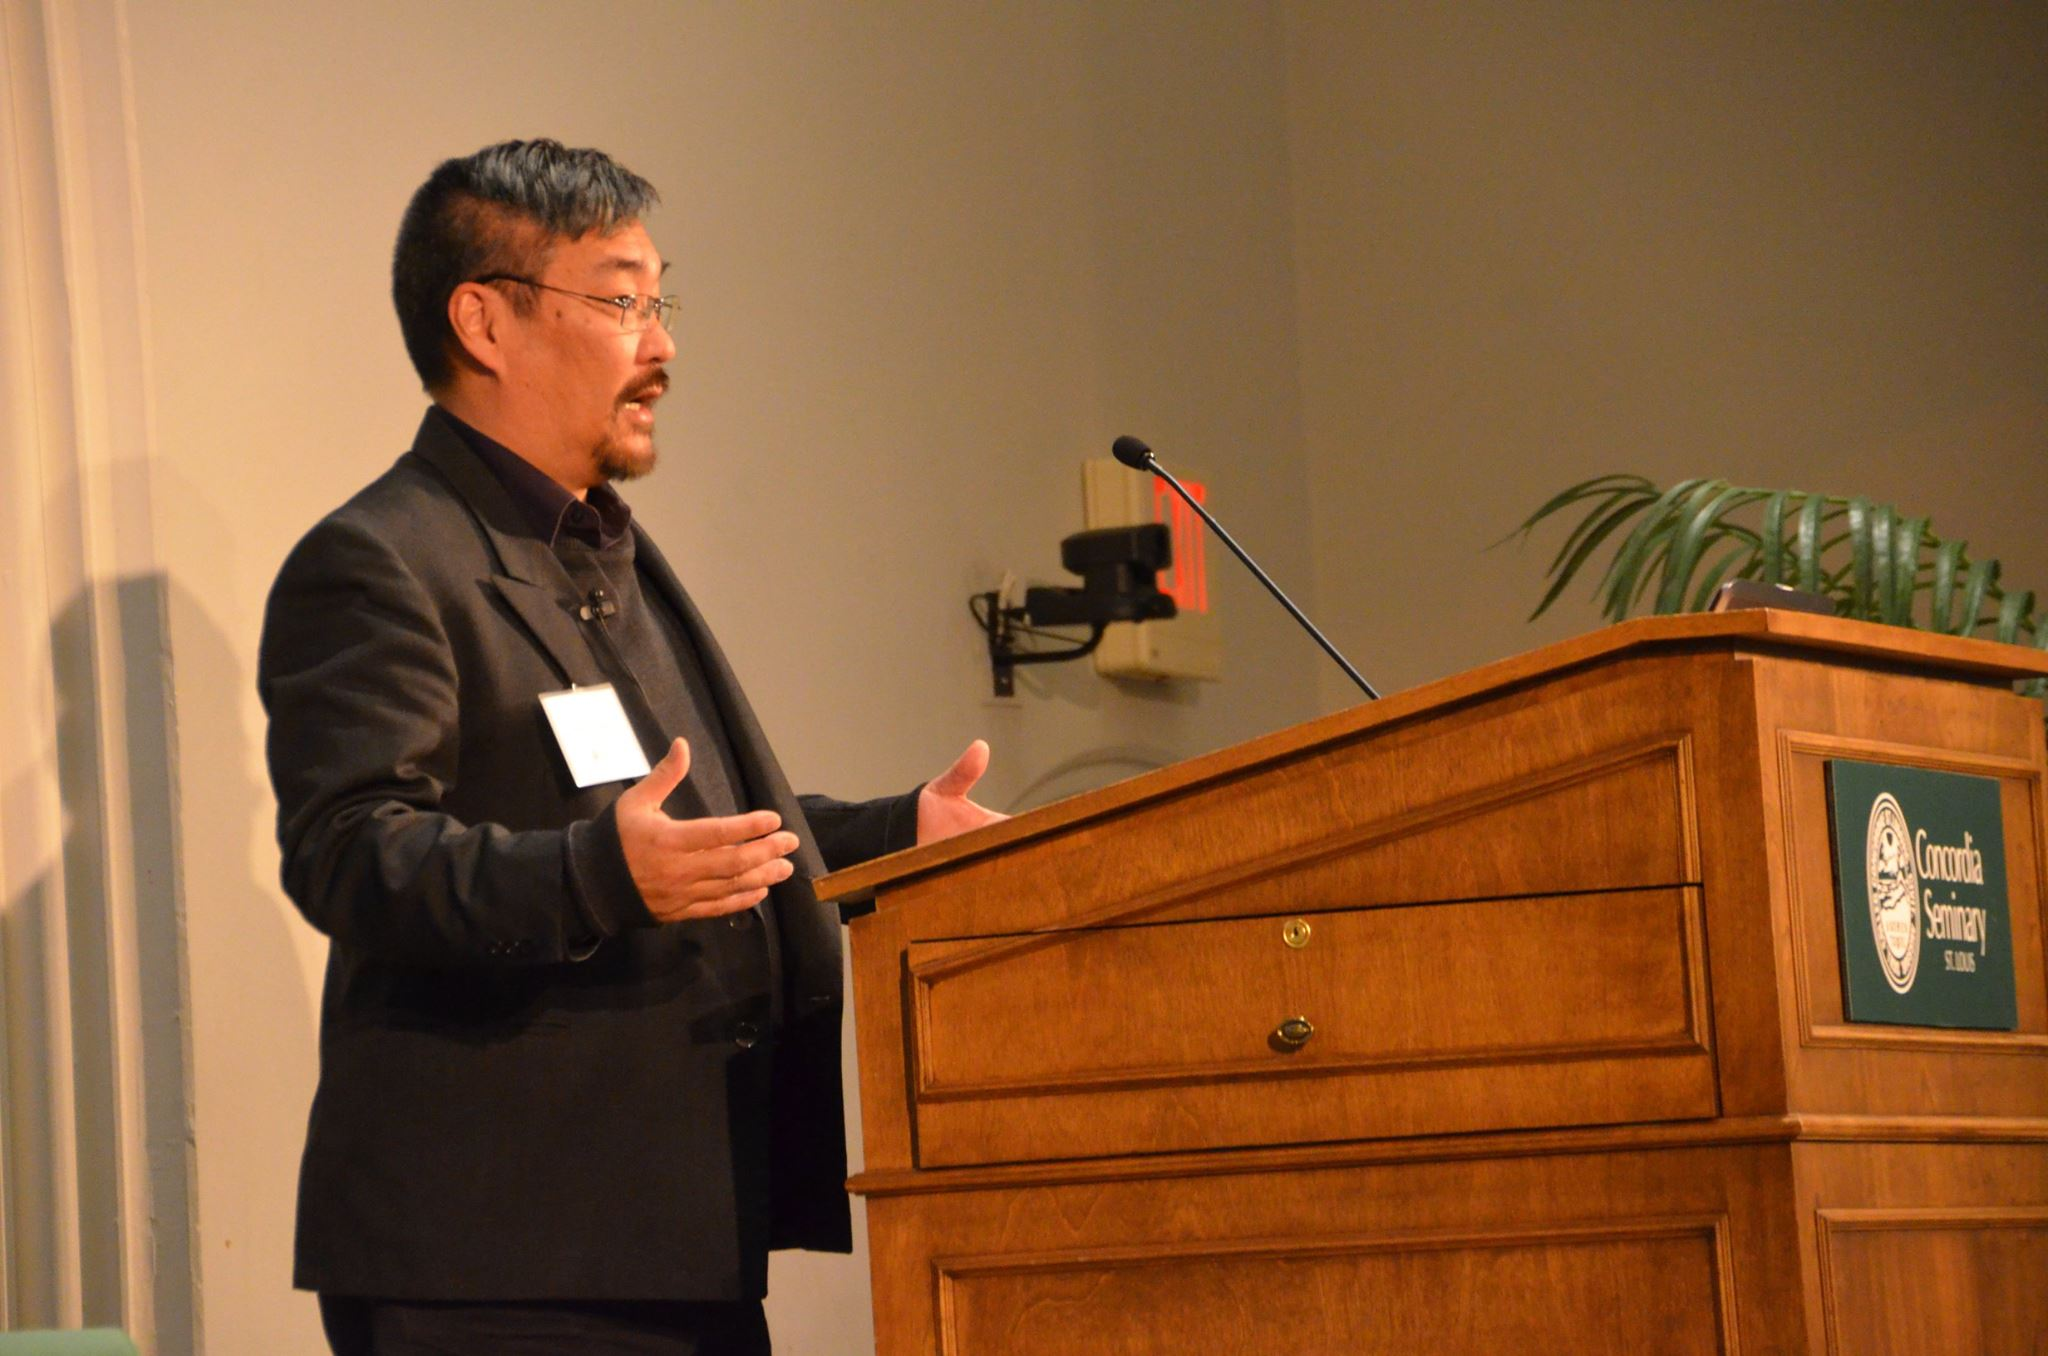 More on the Multiethnic Symposium: (Arranged?) Marriage, Family, and Children